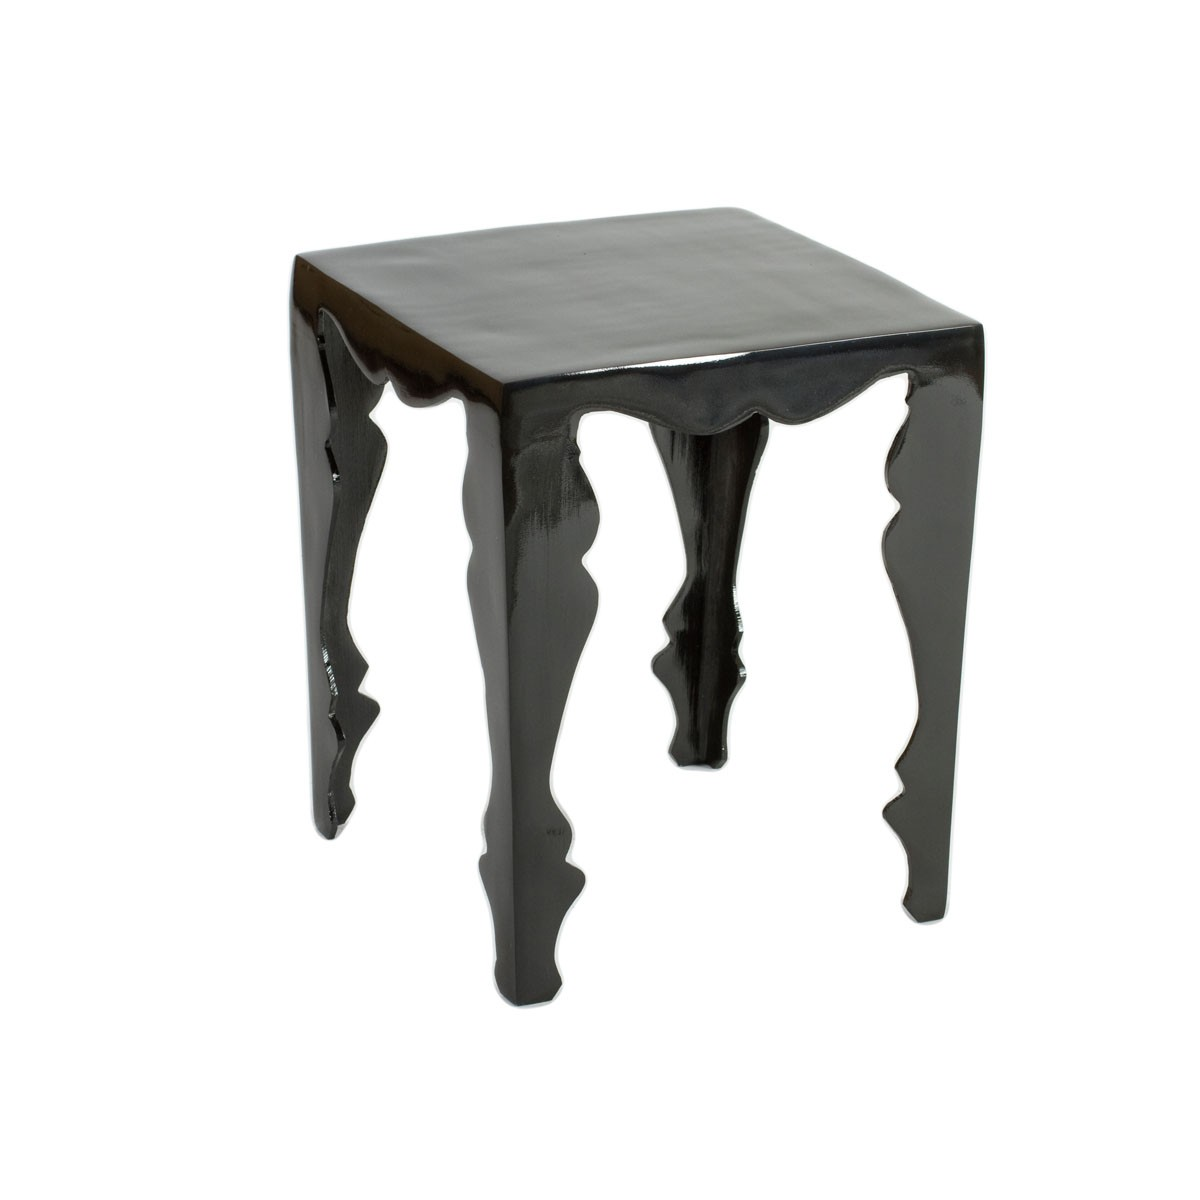 Aria - Louis Black Aluminium Side Table or Occasional Table